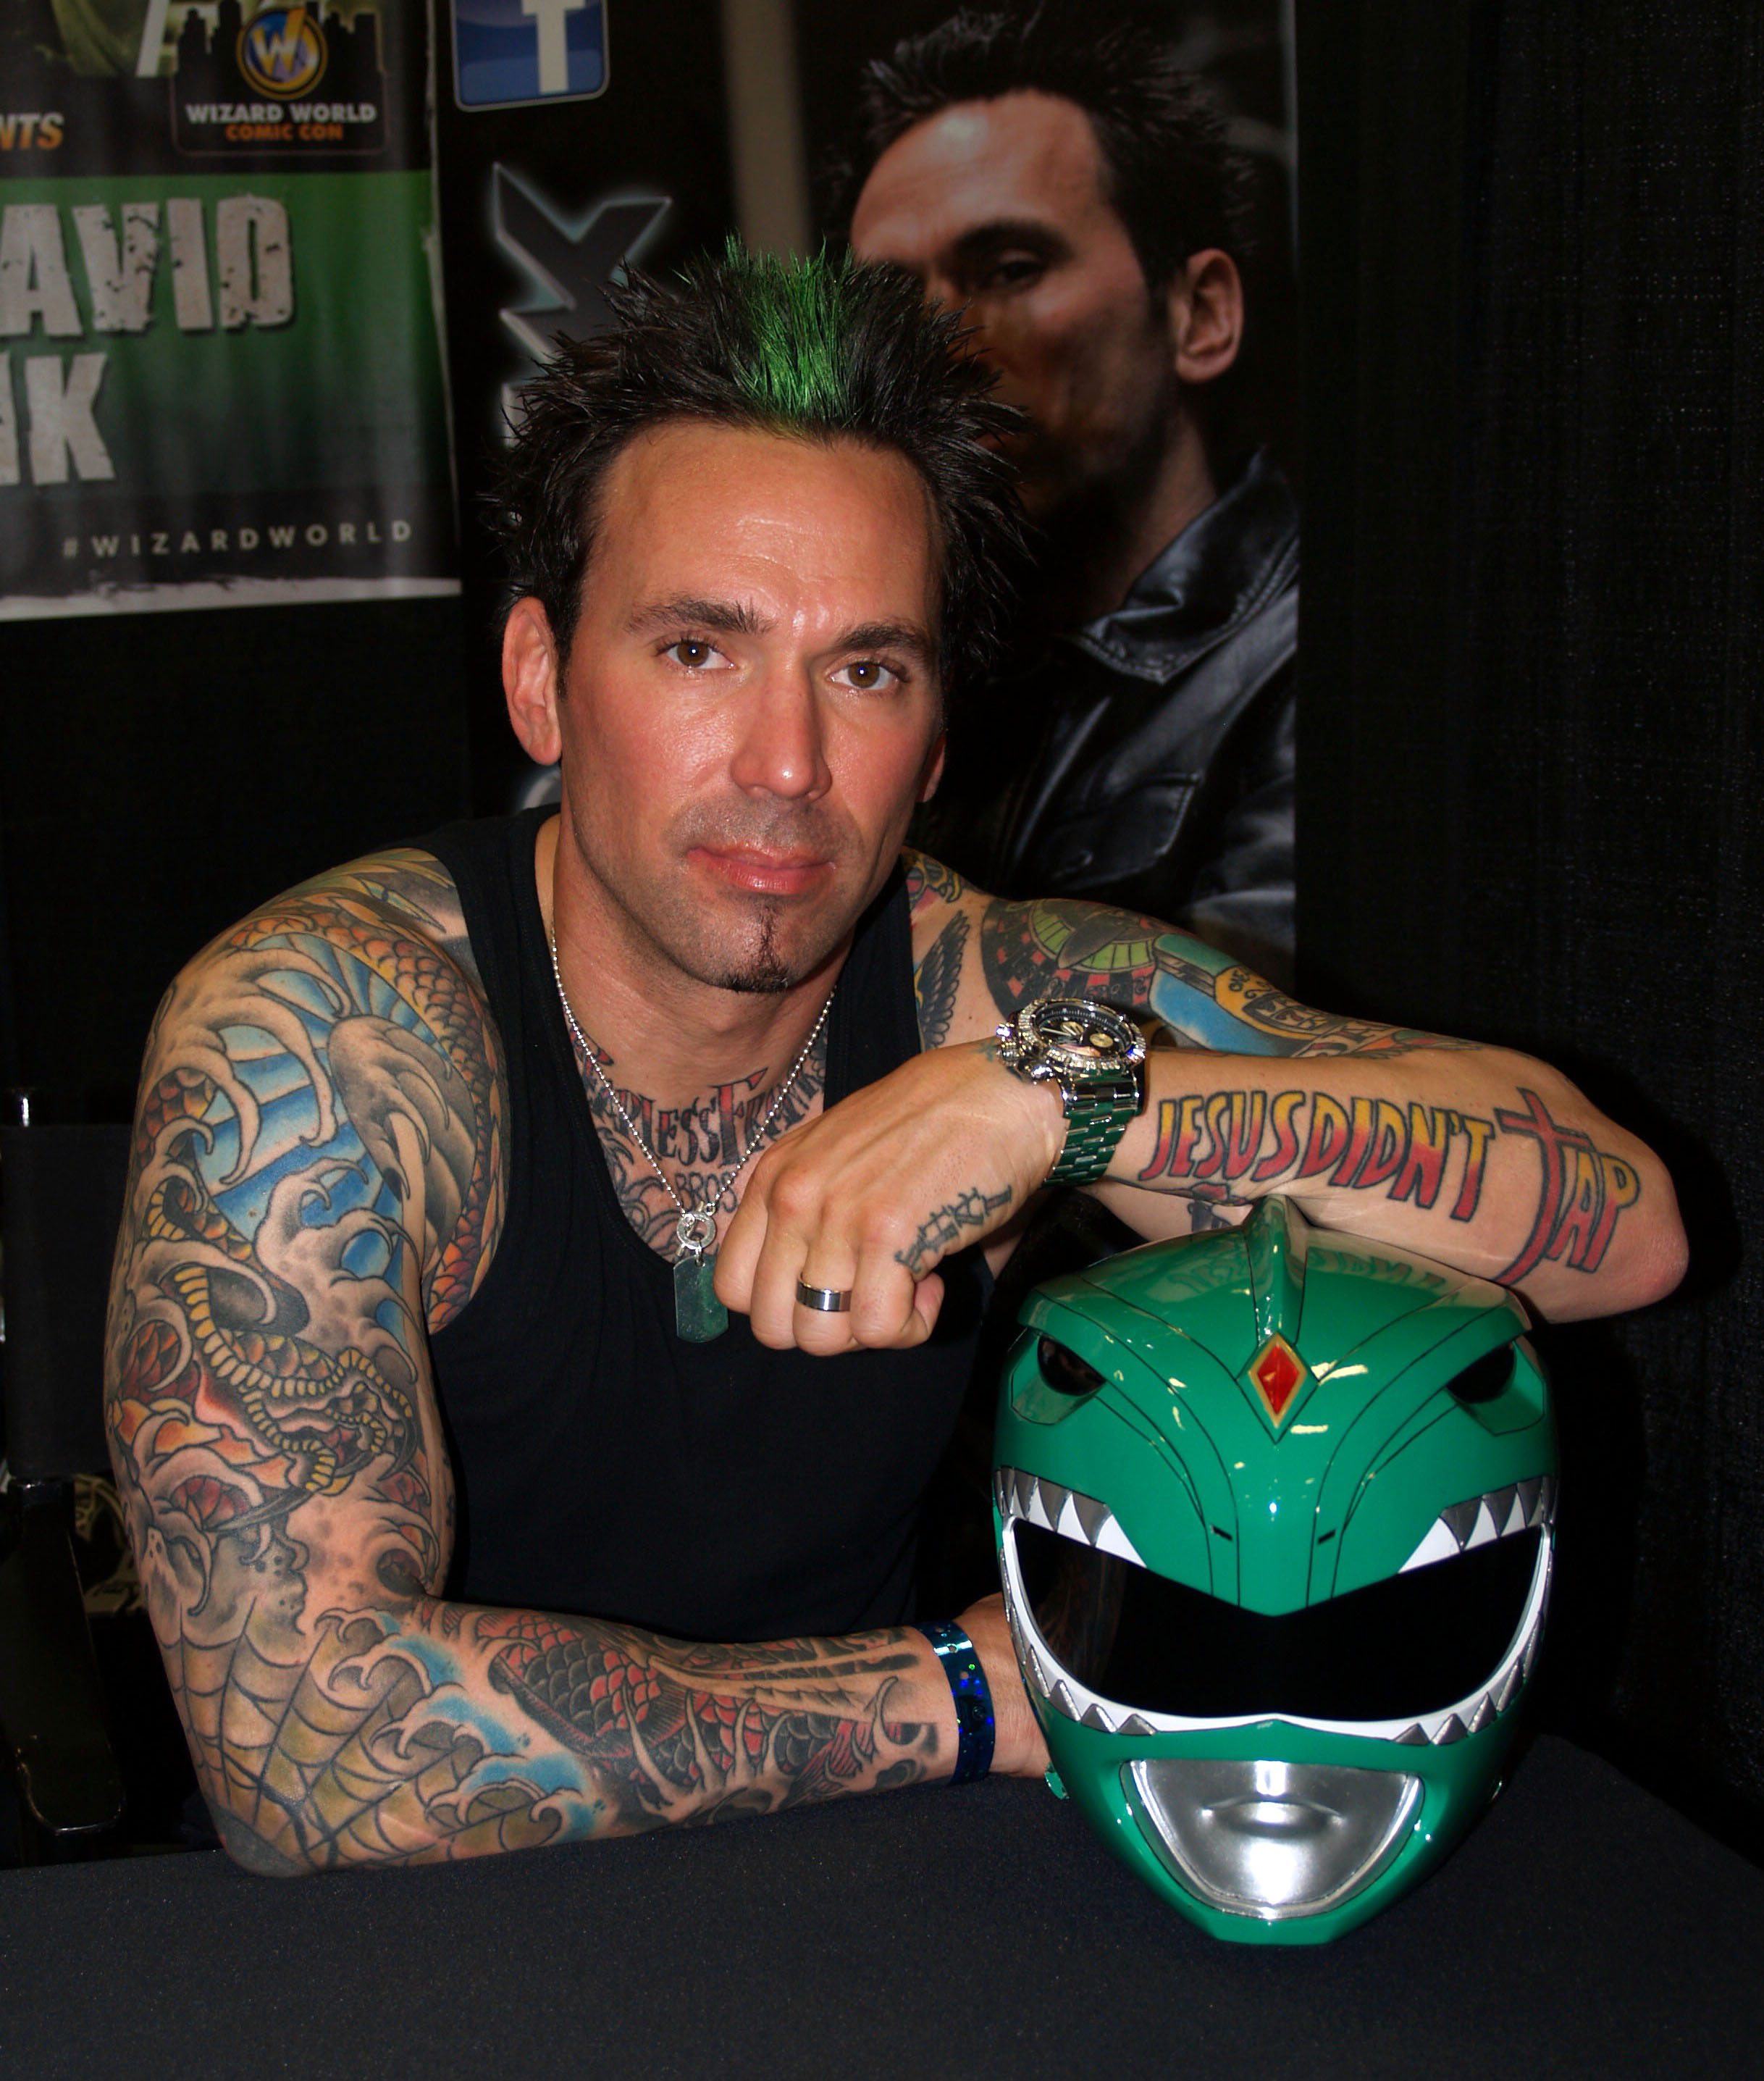 Image result for jason david frank mma